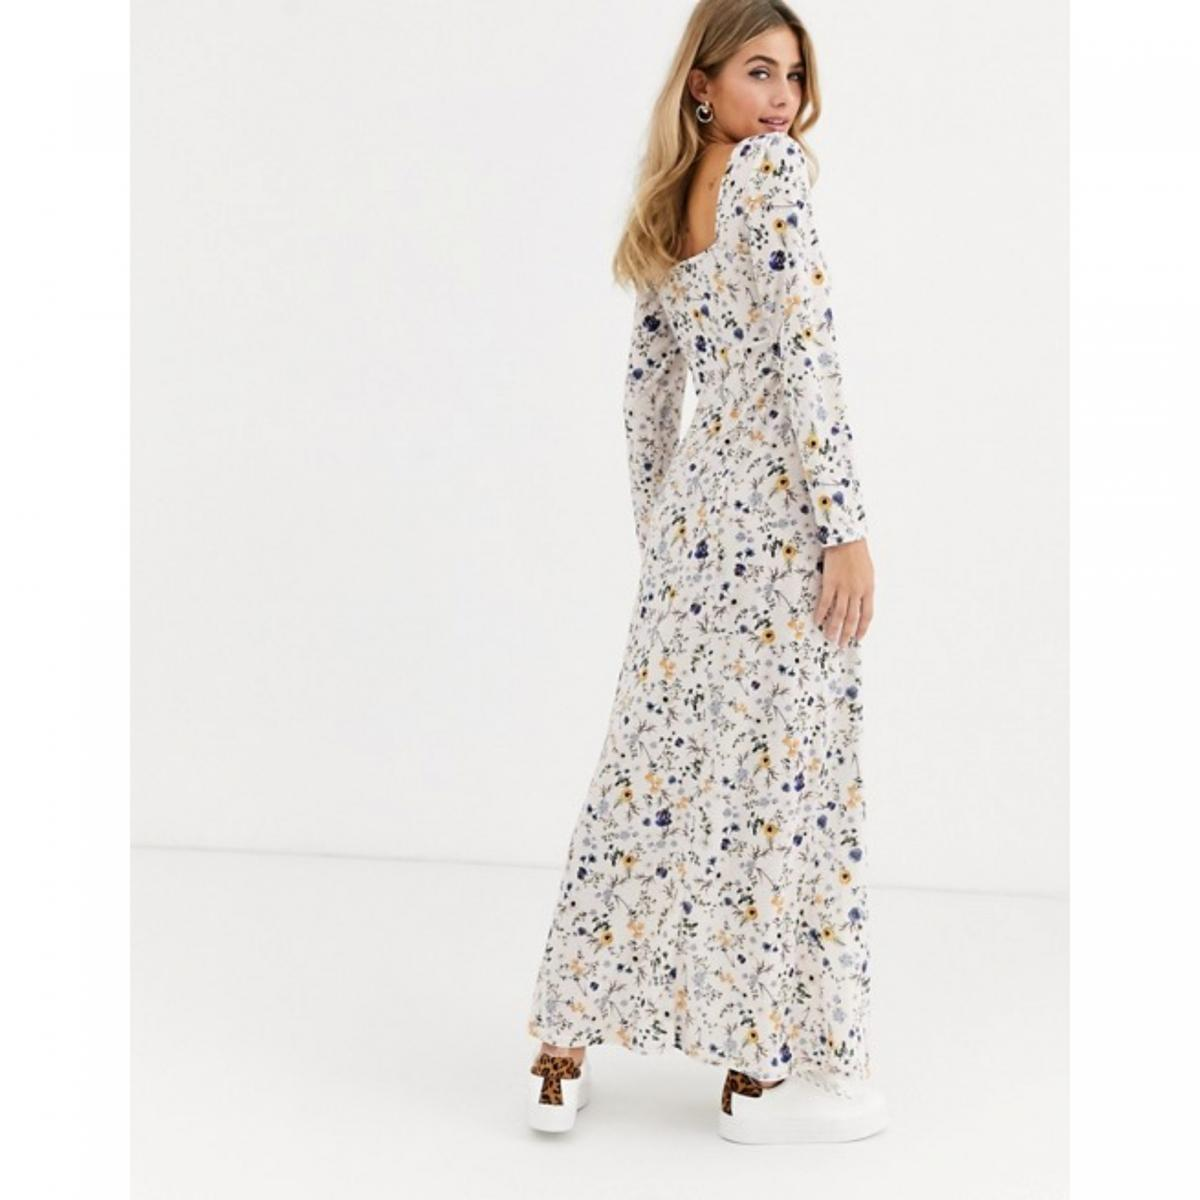 *Never worn* white ASOS long sleeve square neck shirred maxi dress (size 4). Price may be negotiated.